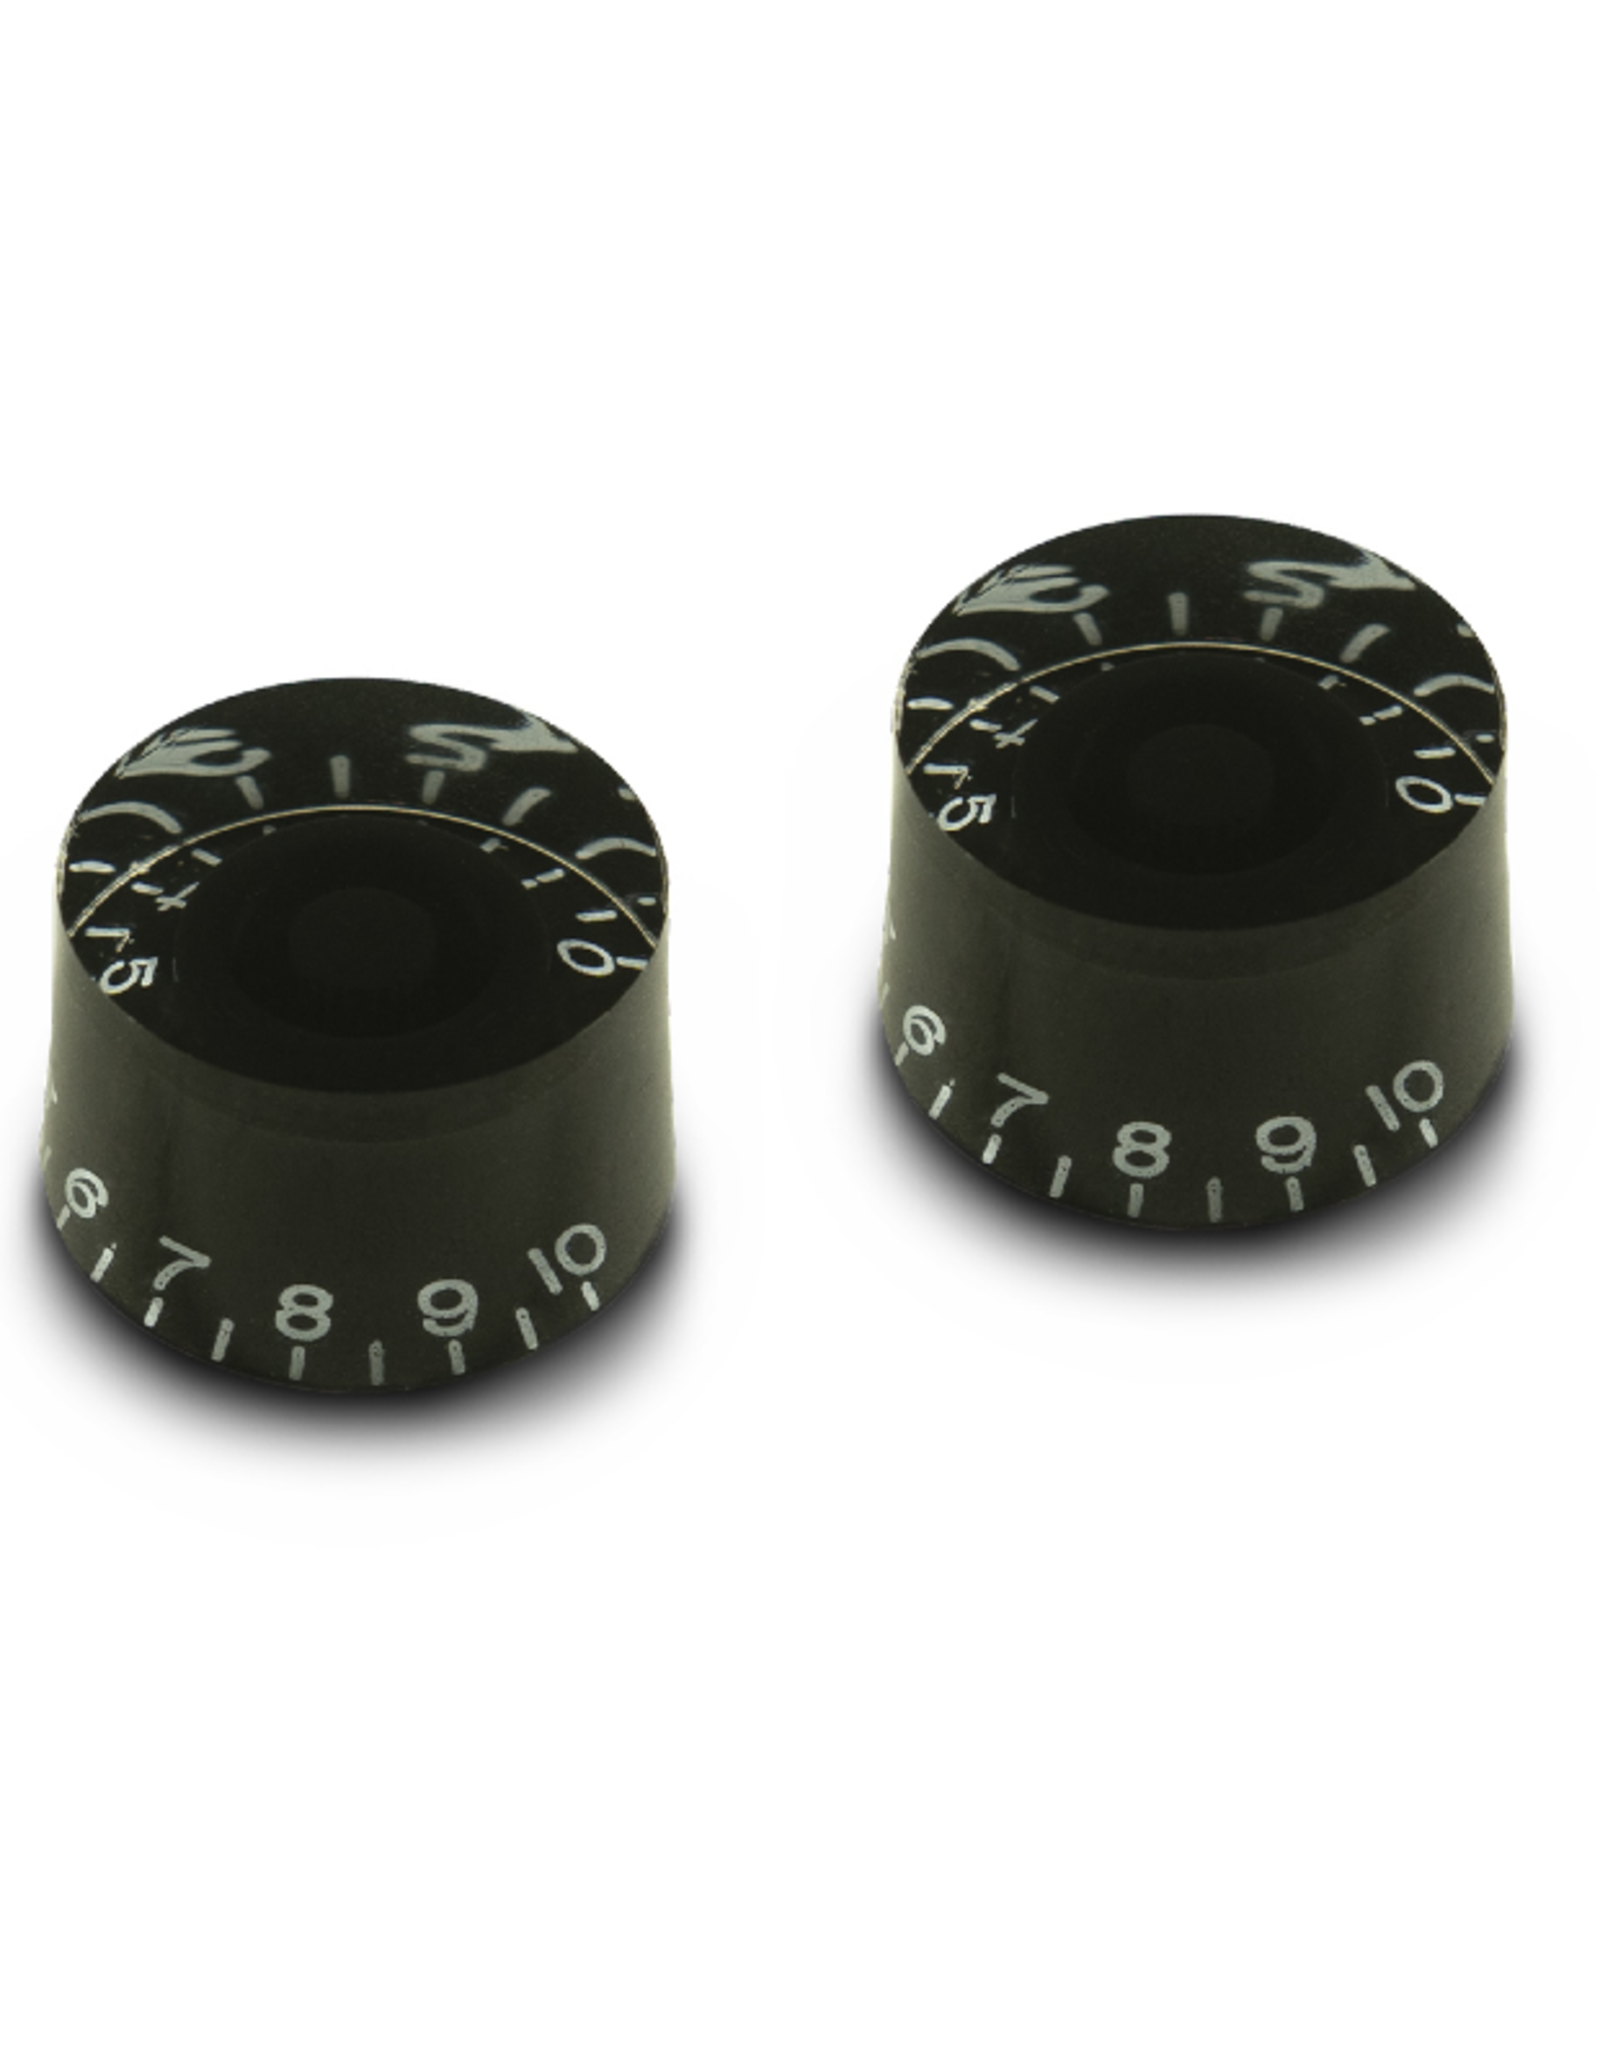 WD Music Products WD Vintage 50's Tall Speed Knob Set Of 2 Black